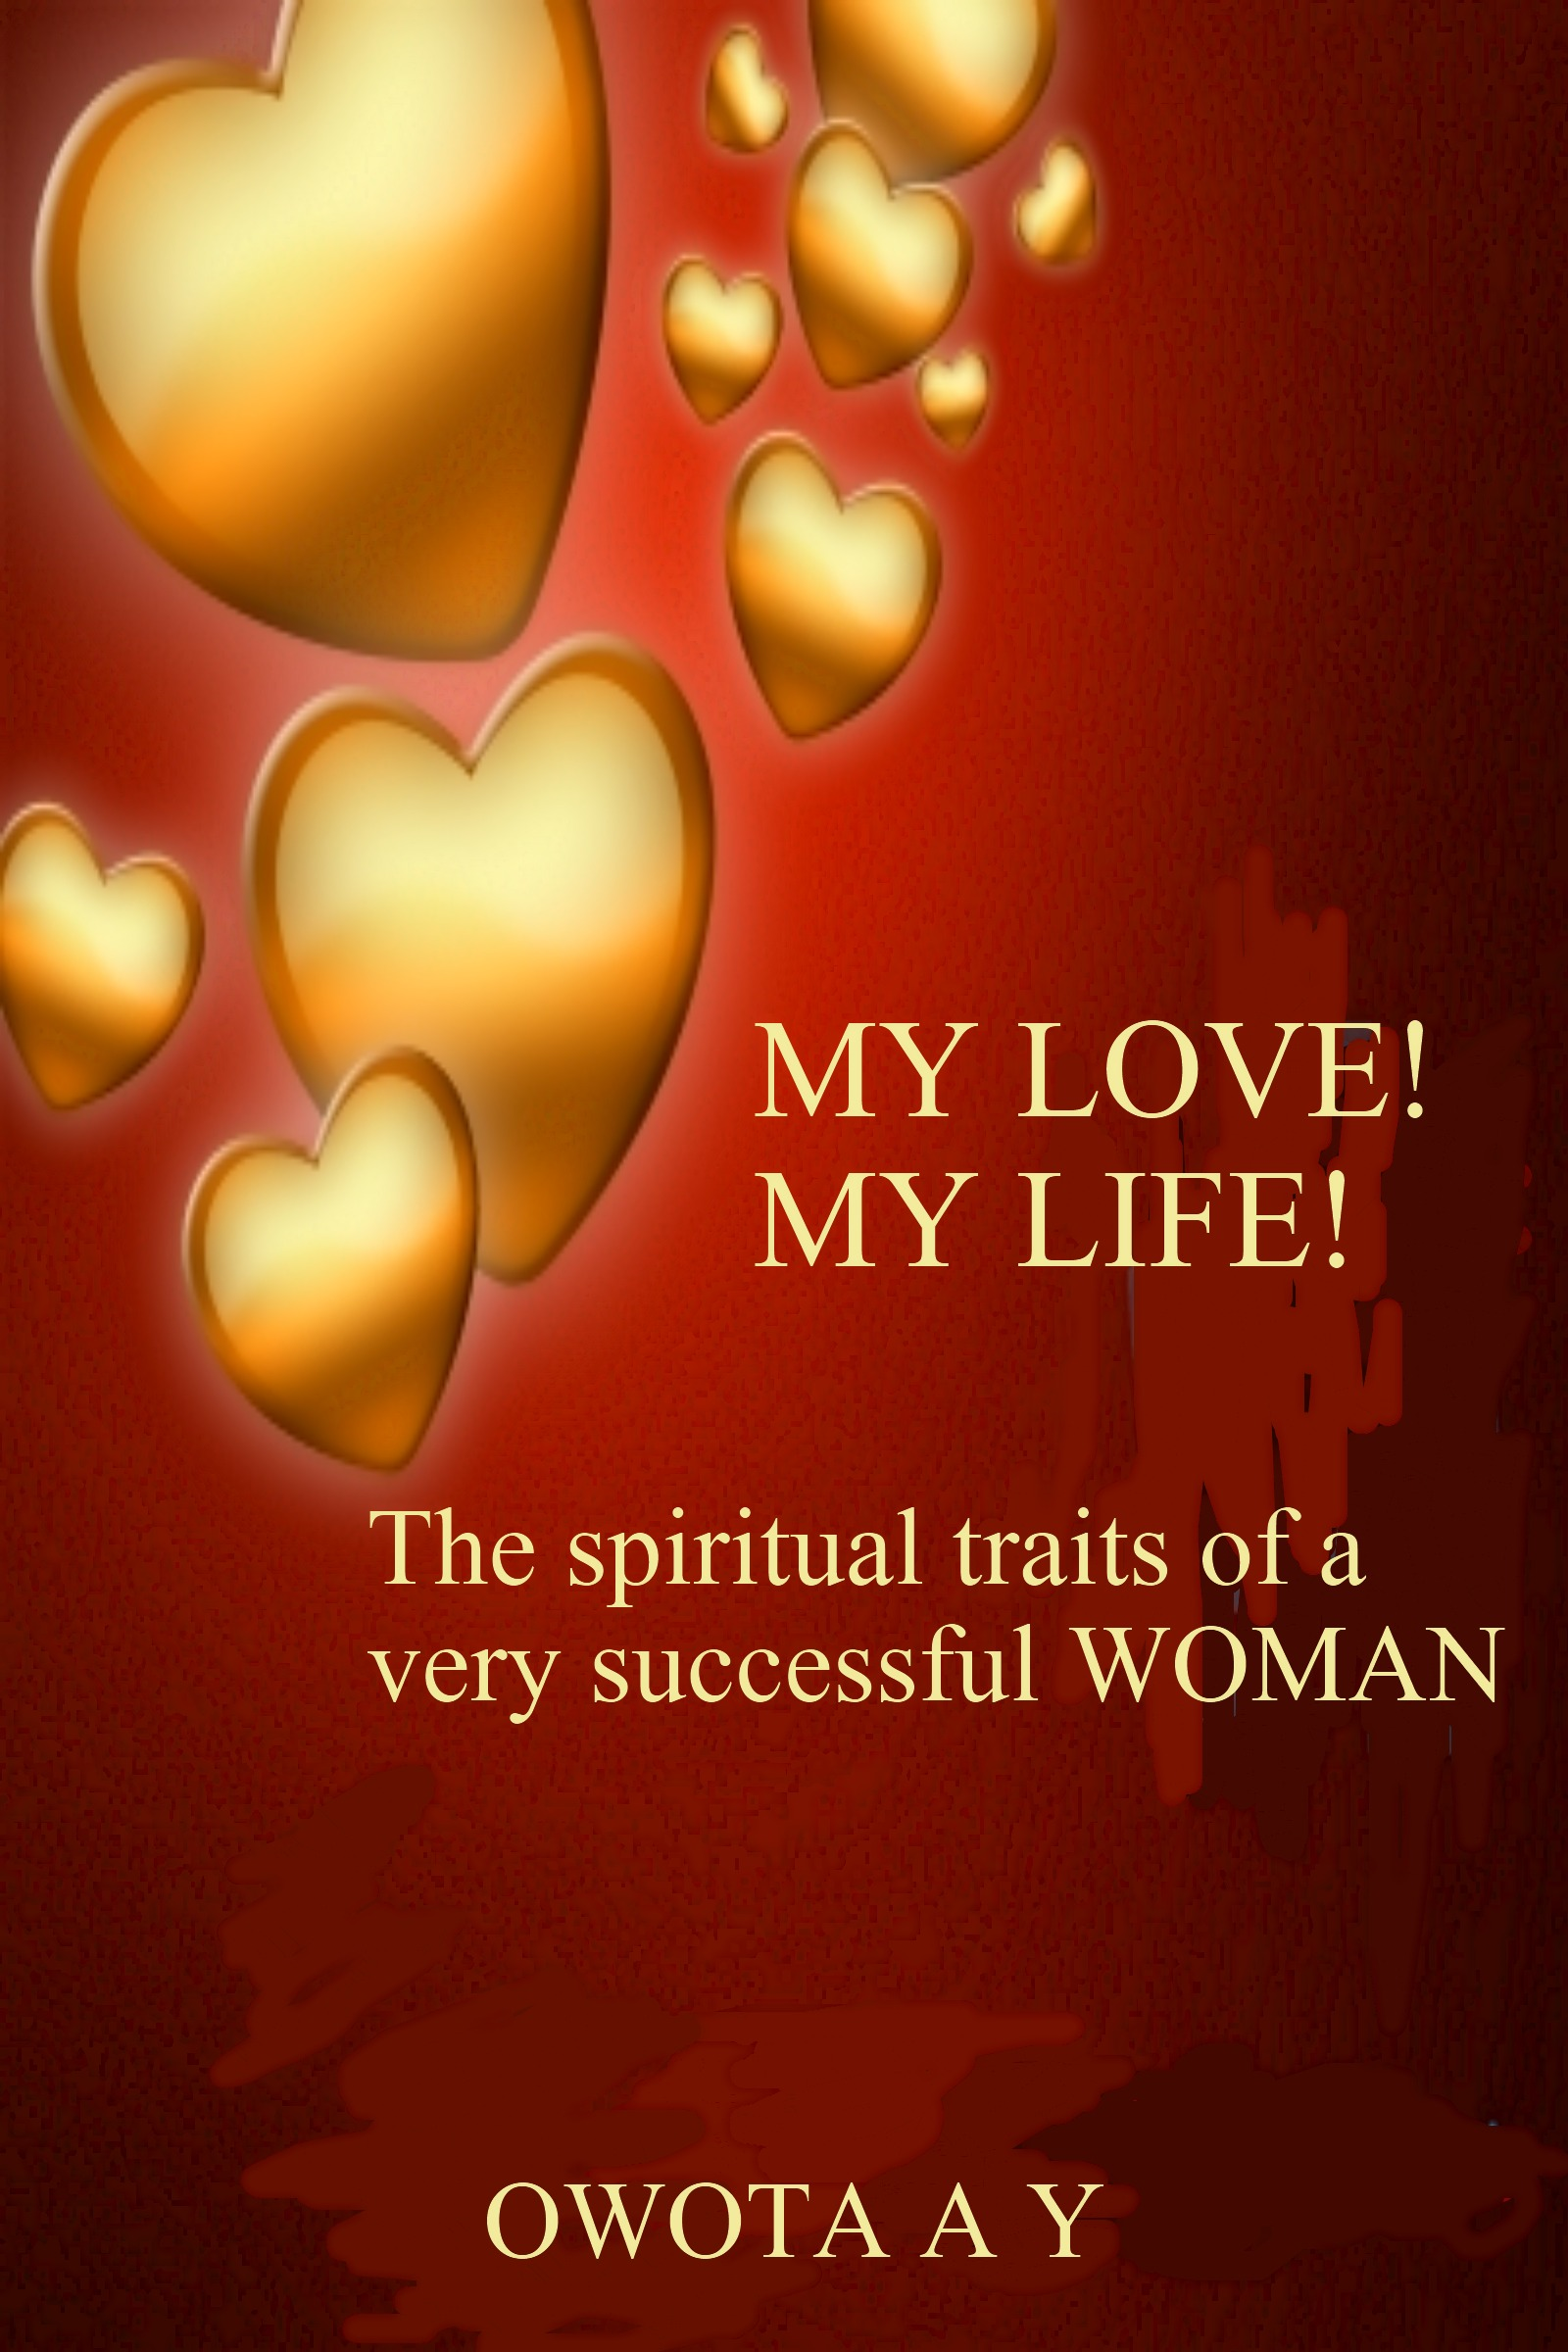 My Love! My Life! 'The spiritual traits of a very successful woman'